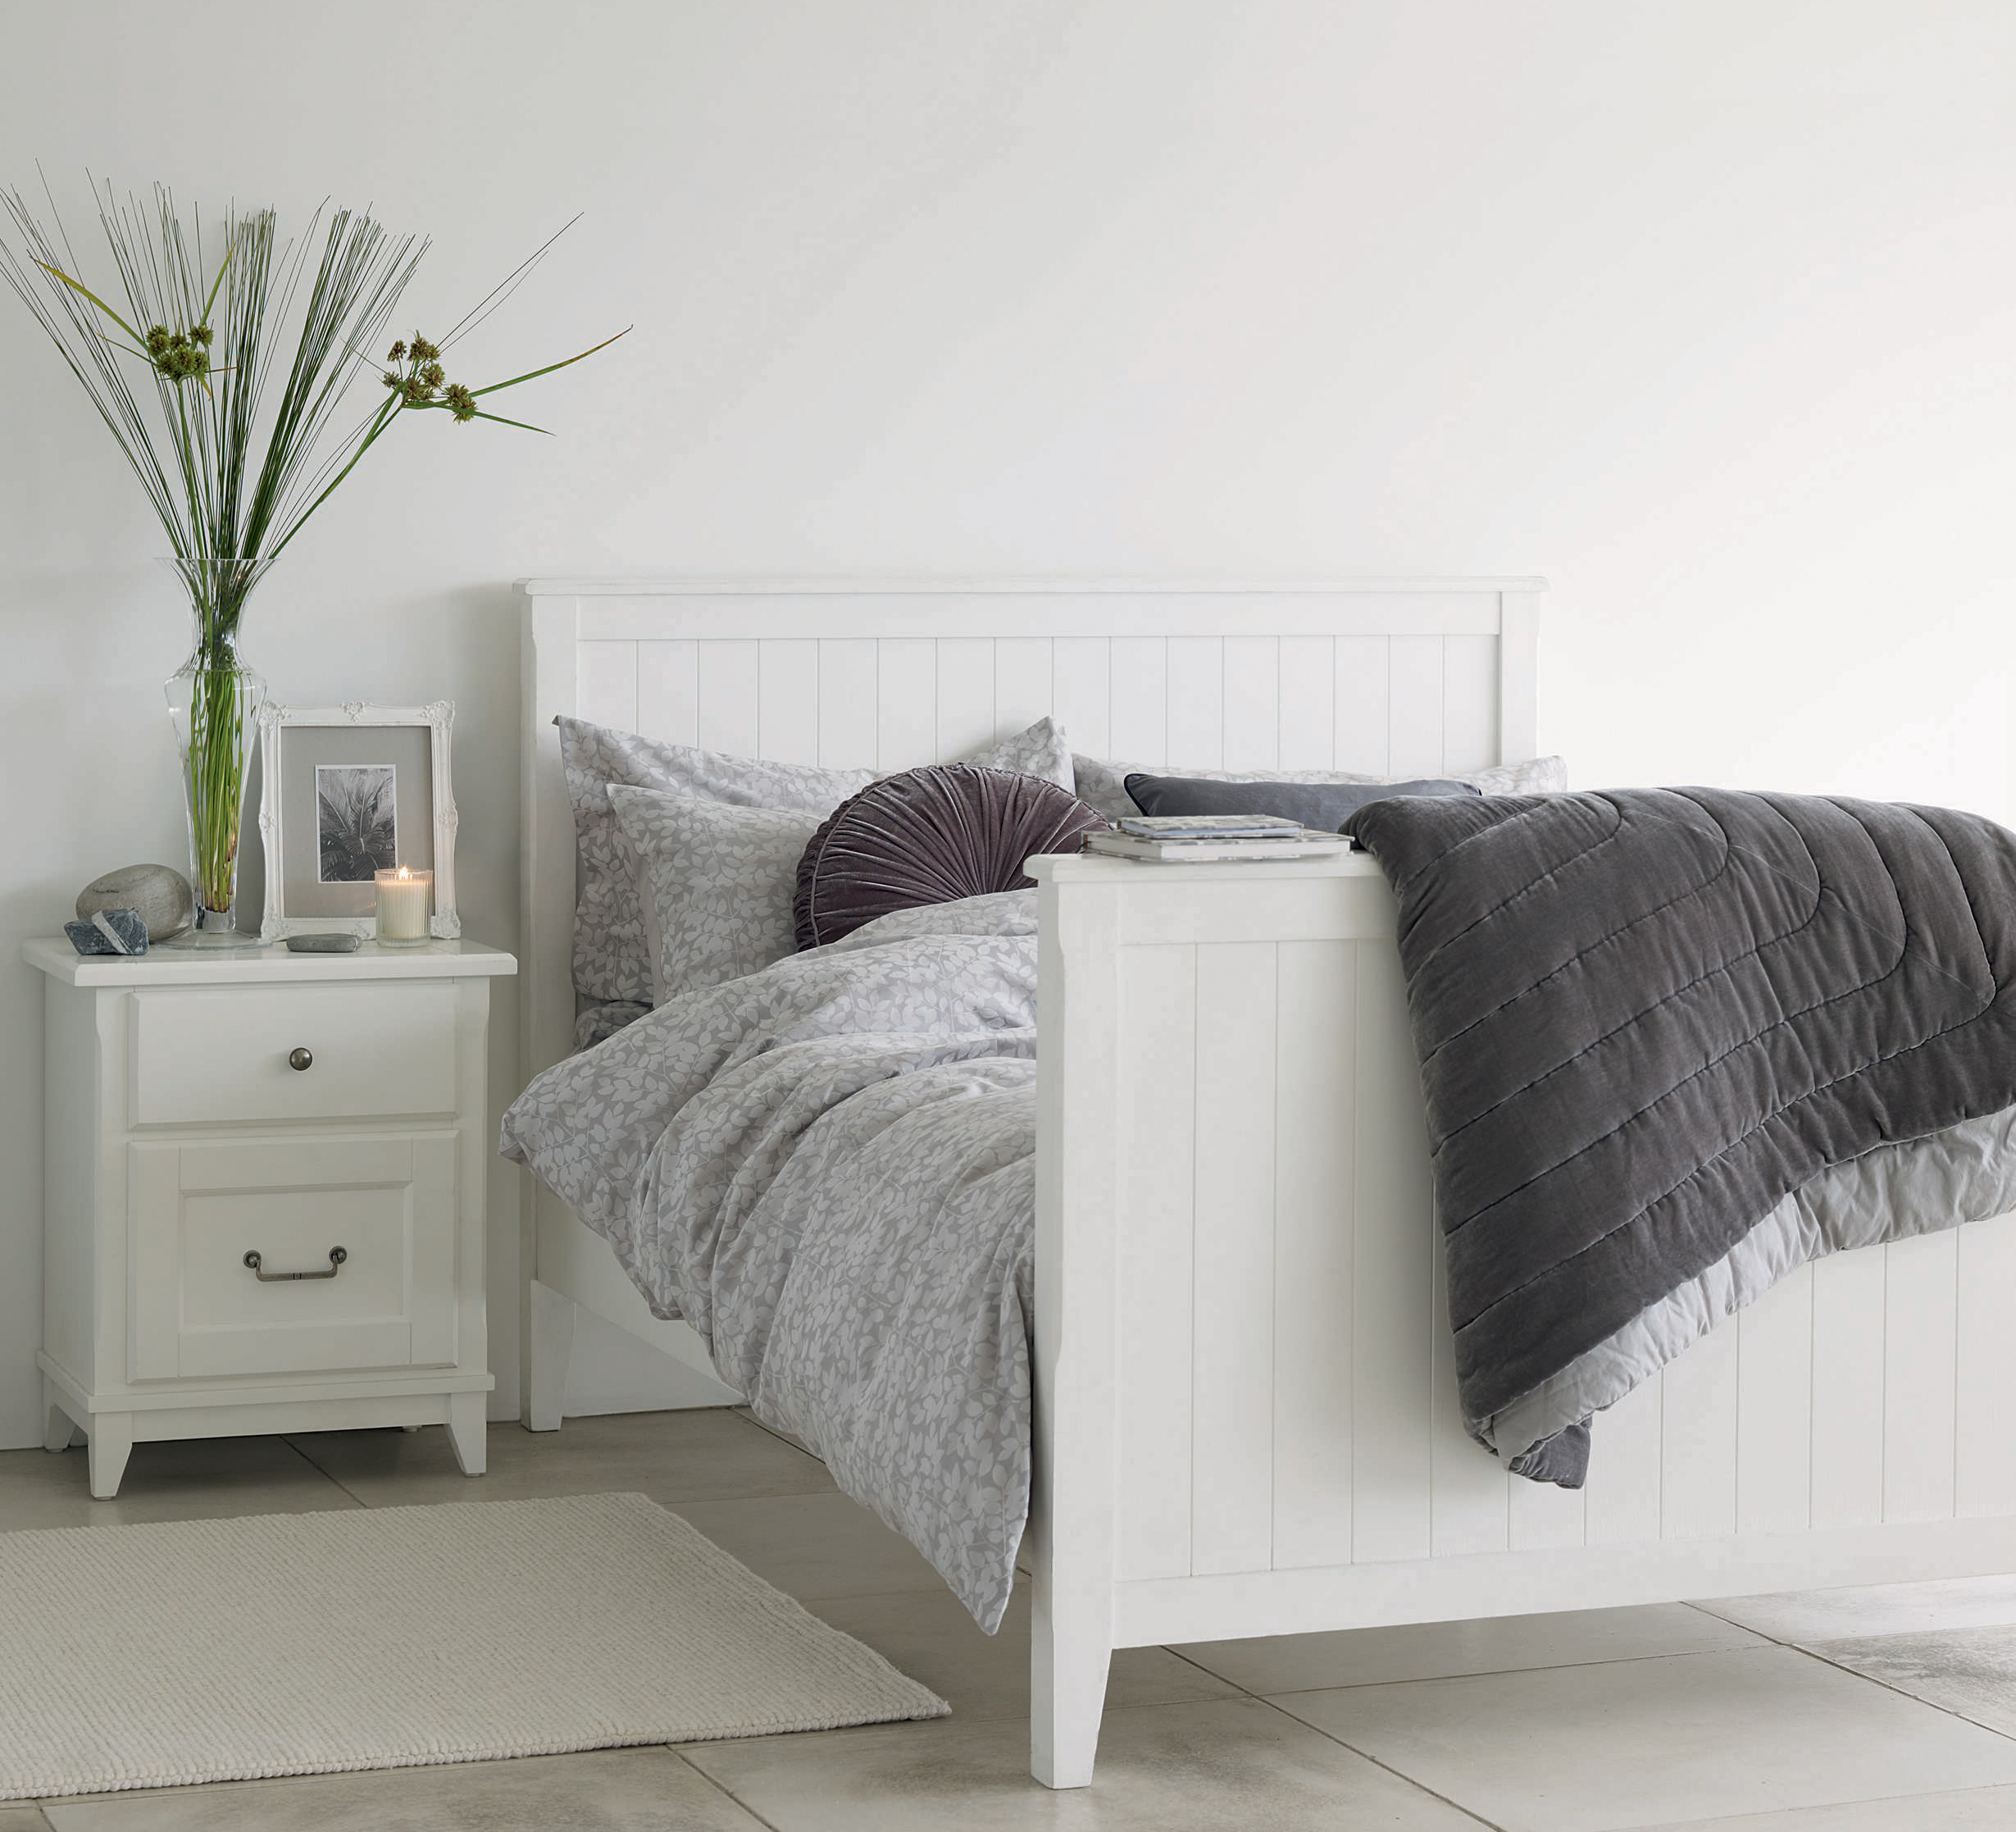 Tips for choosing the perfect bed-frame for your bedroom